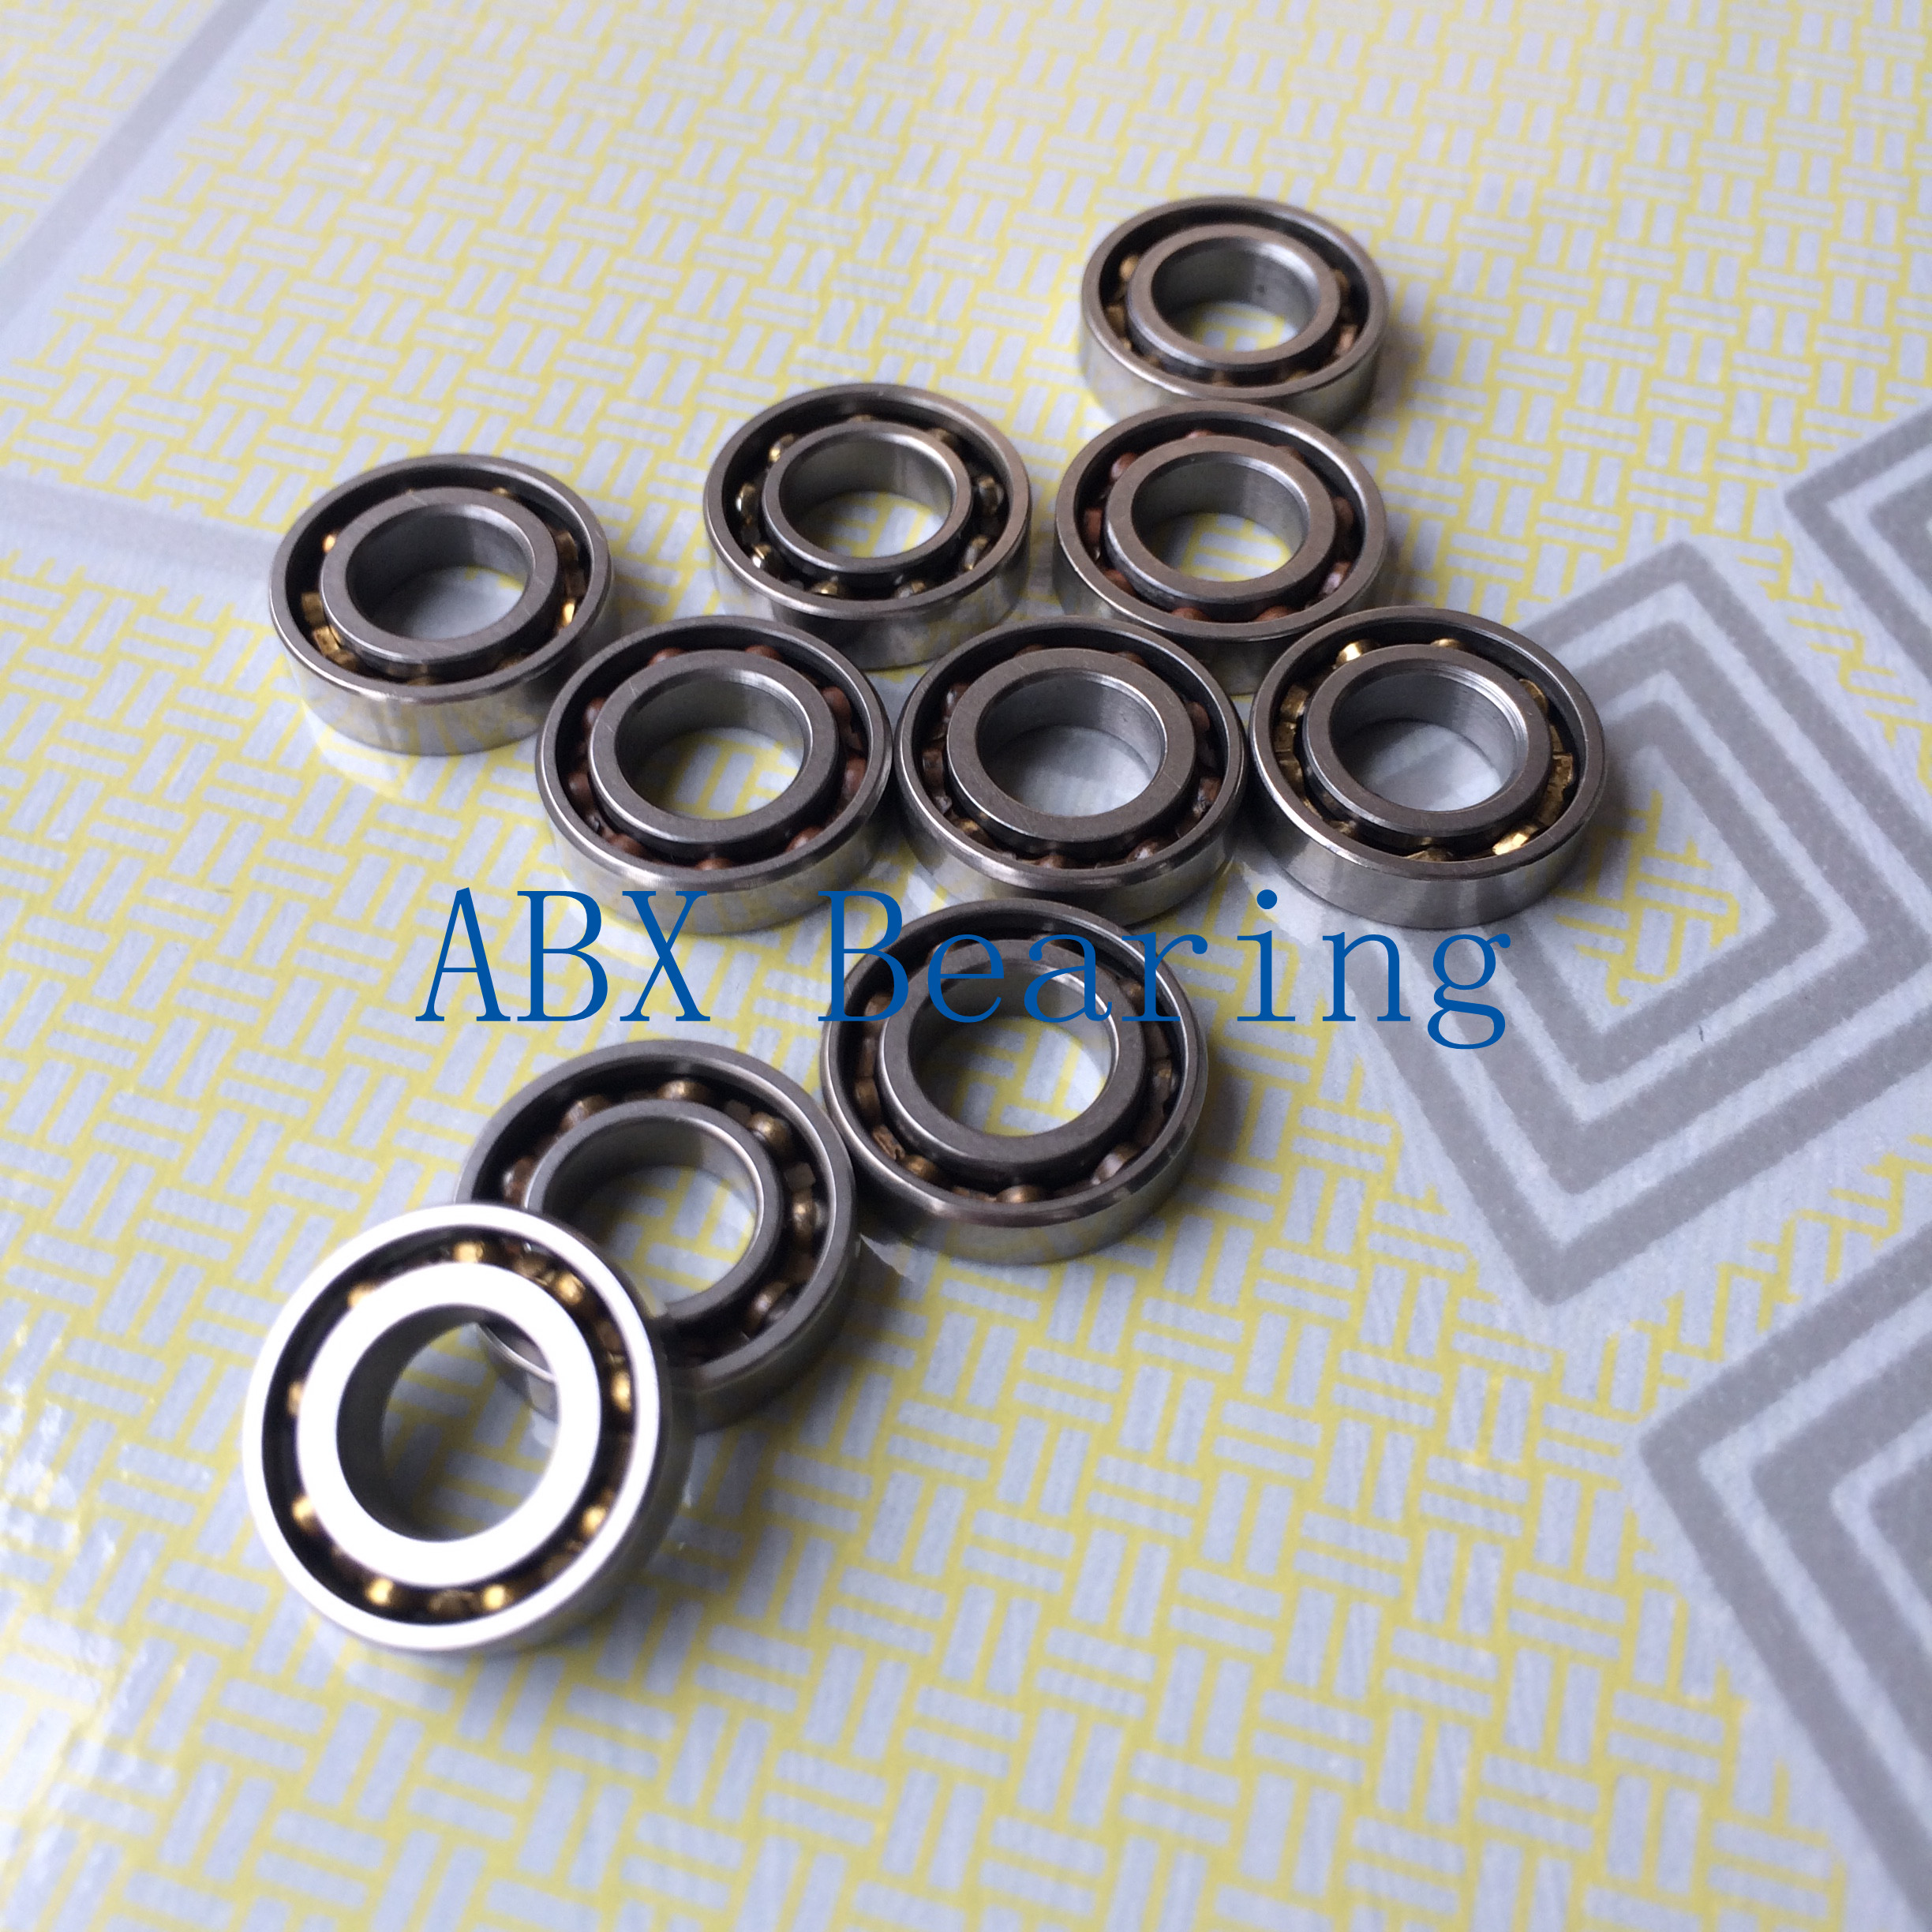 uxcell 10pcs 604-2RS 4mmx12mmx4mm Double Sealed Miniature Deep Groove Ball Bearing